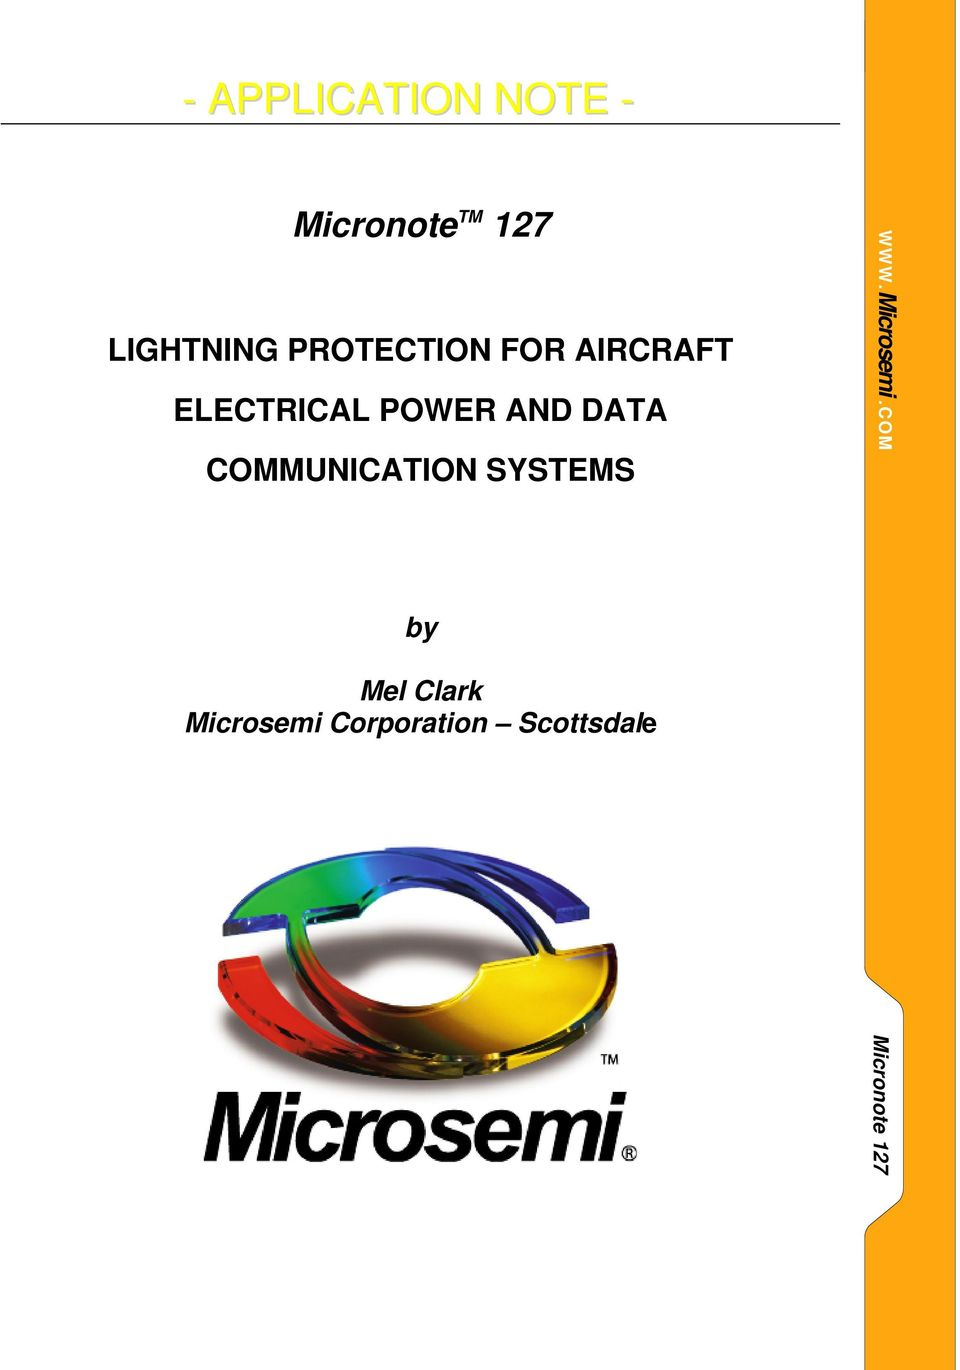 POWER AND DATA COMMUNICATION SYSTEMS by Mel